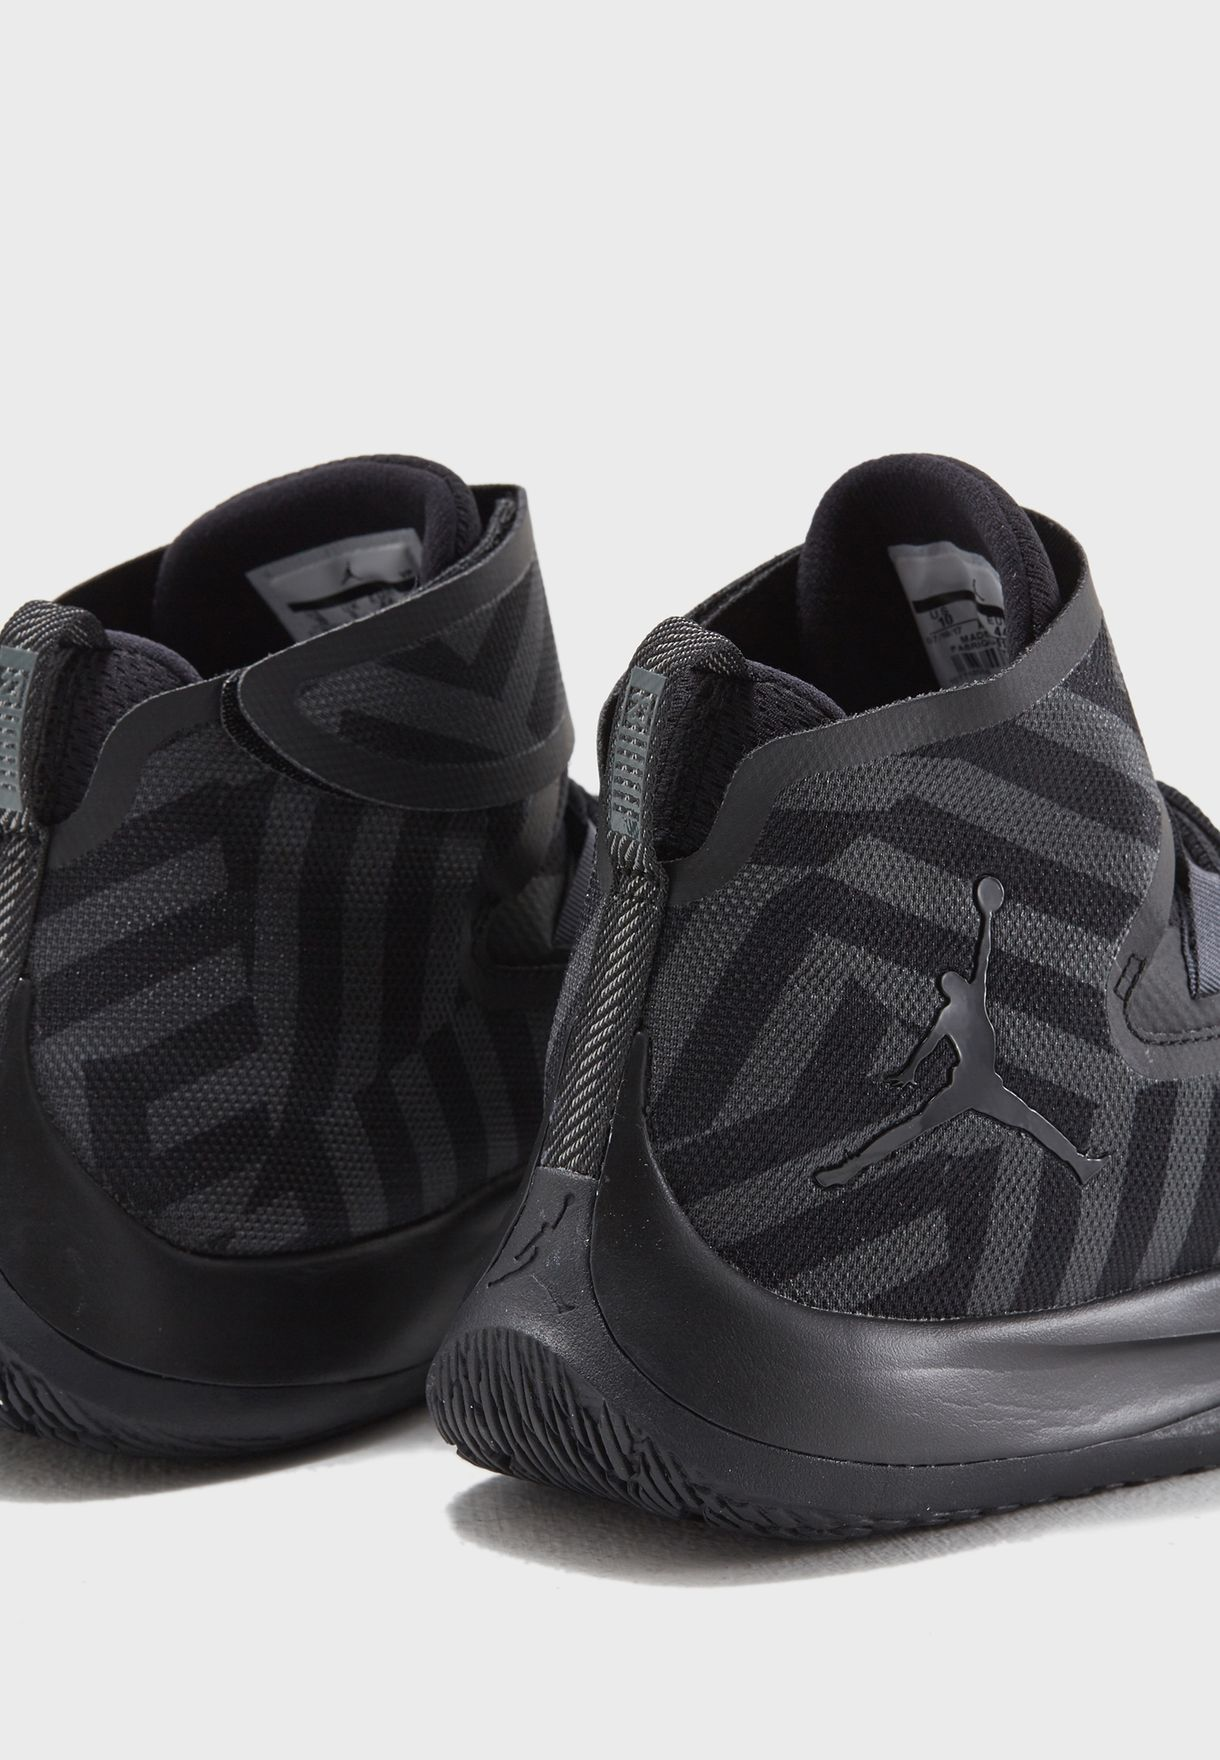 new style 83038 a2a11 Jordan Fly Unlimited